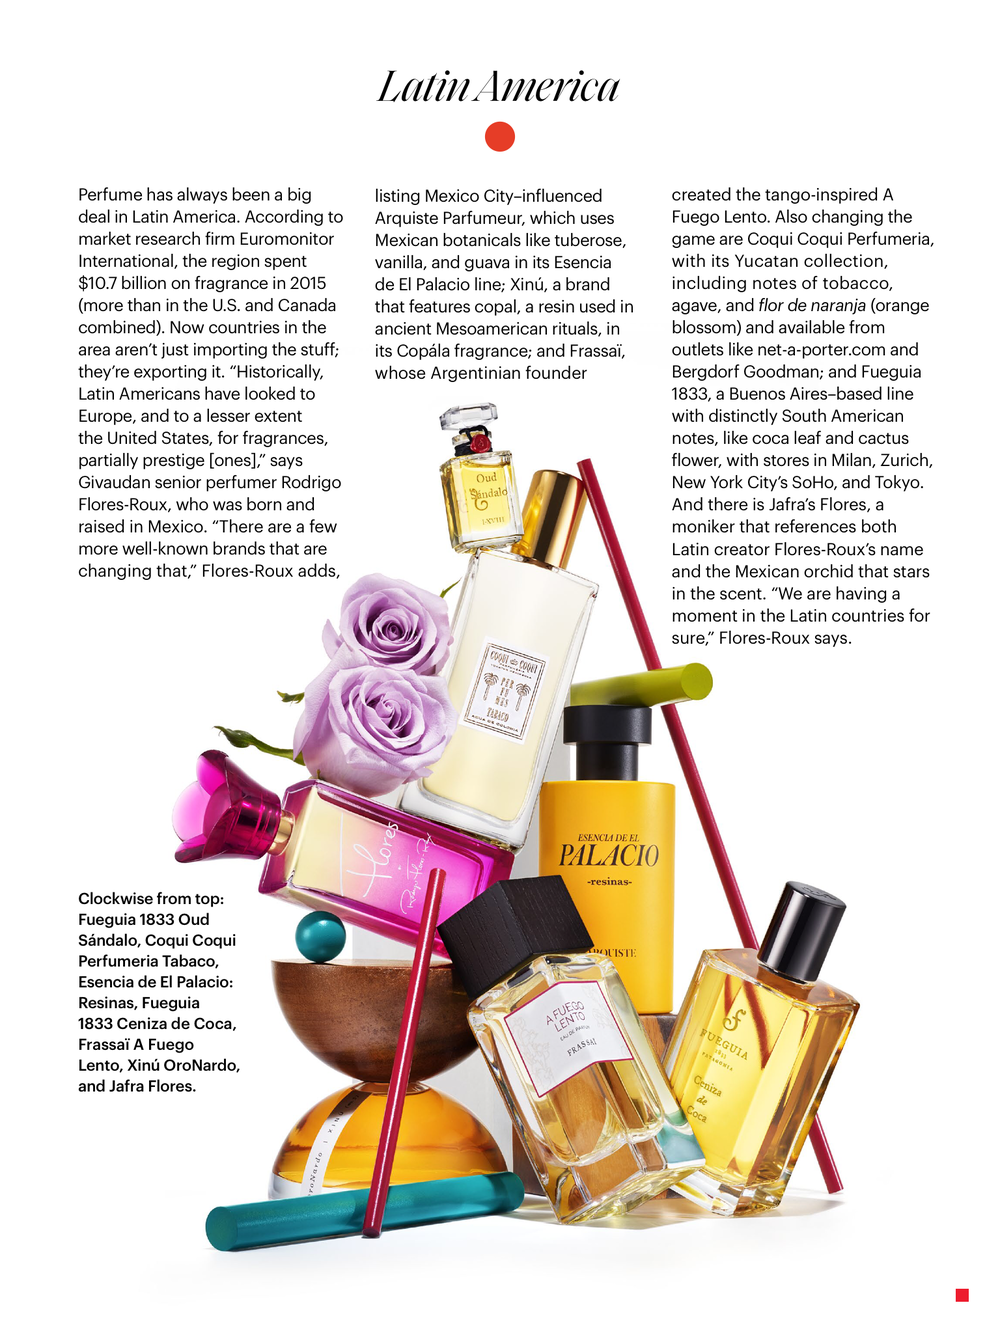 A Fuego Lento perfume in Allure Magazine March 2019 -